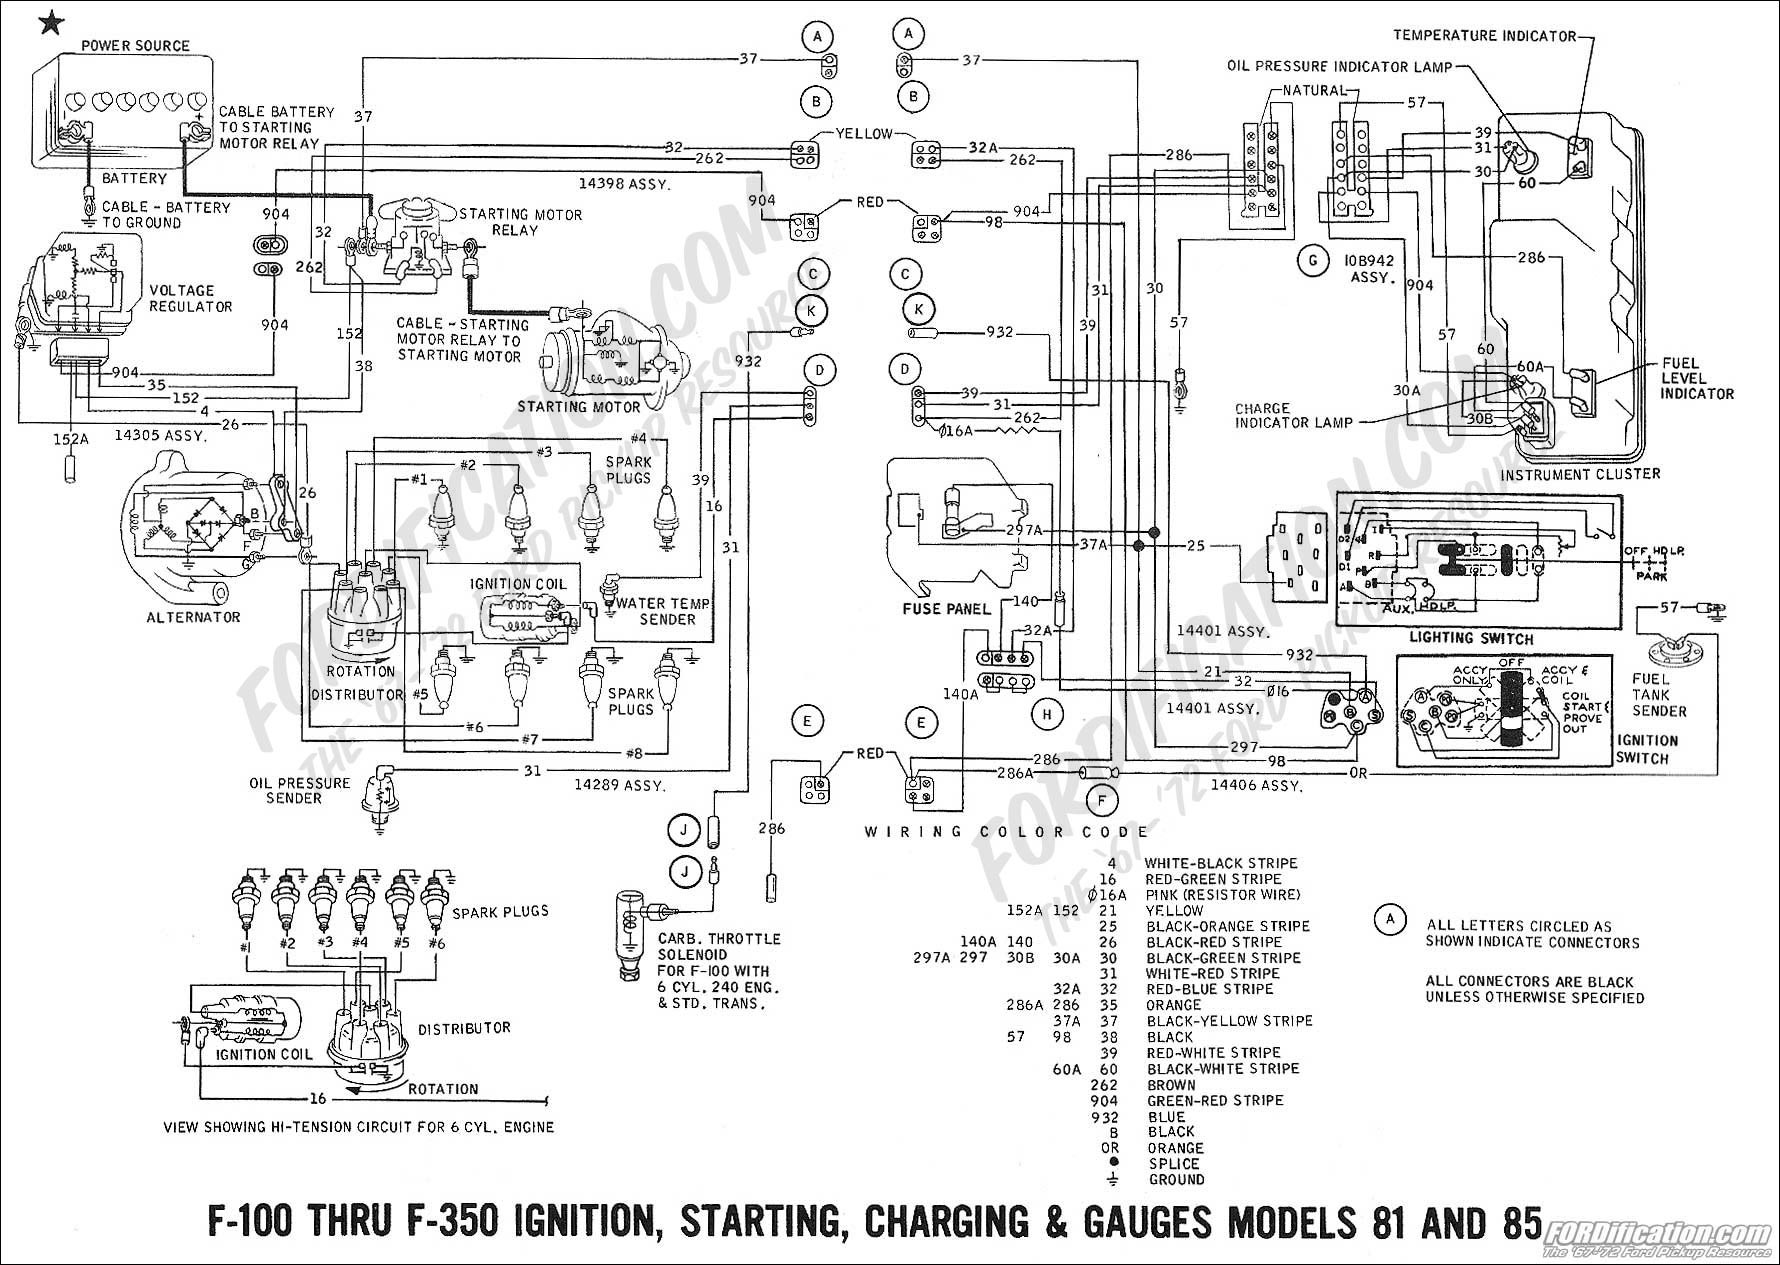 hight resolution of 1986 ford f150 engine diagram ford charging system wiring diagram further 1970 ford truck wiring of